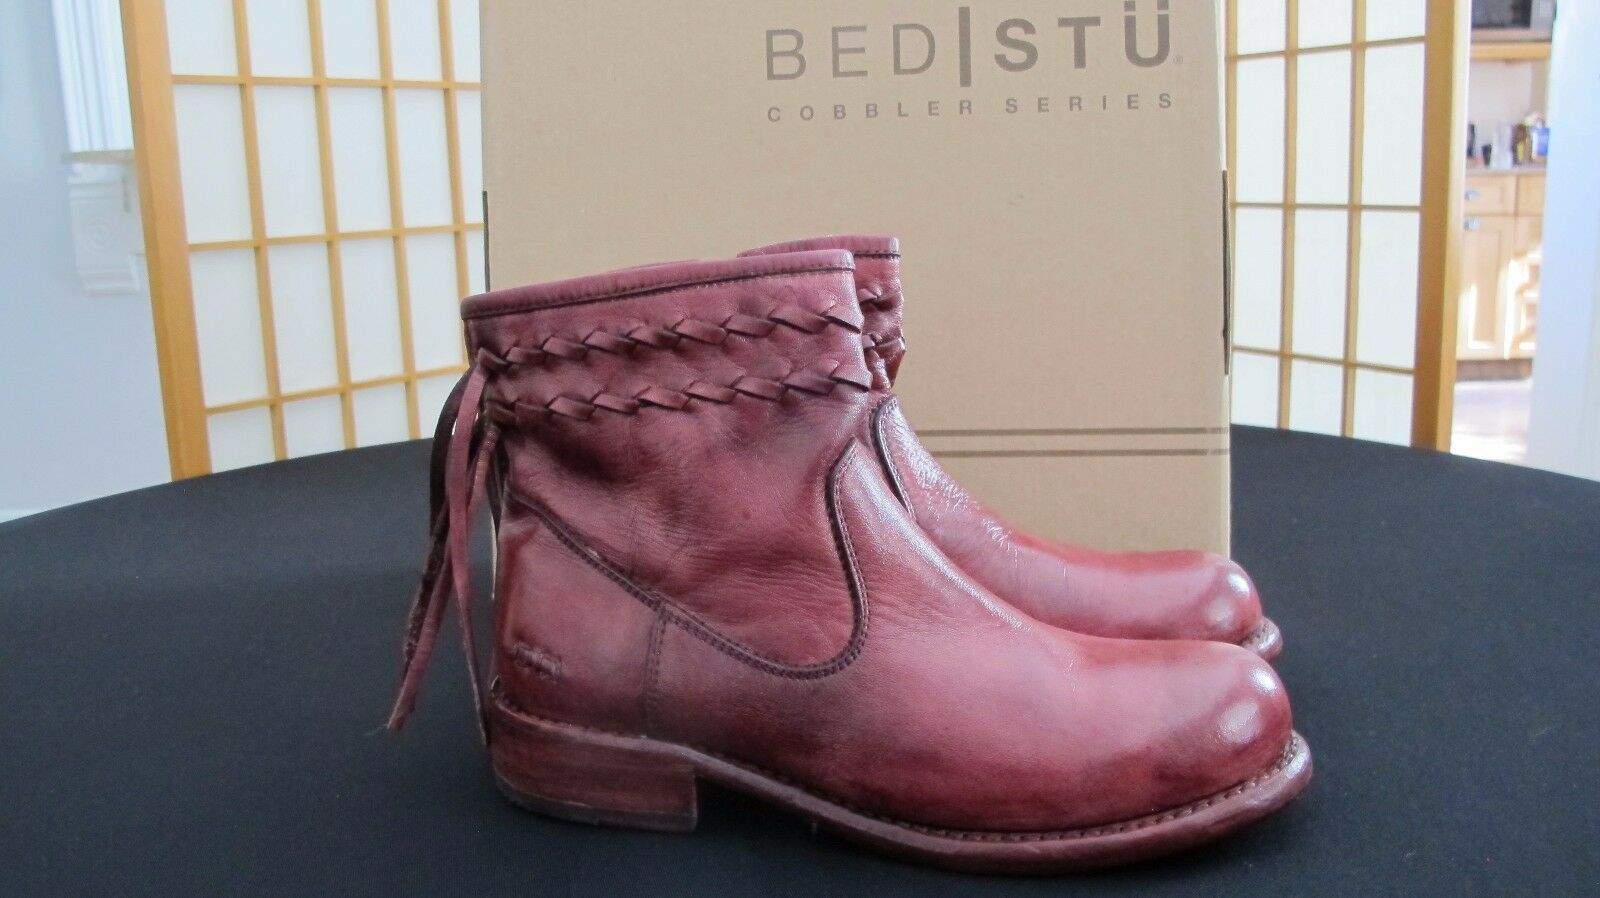 BED STU CRAVEN DARK SCARLET COBBLER SERIES BENCH MADE REAR ZIP BOOTS SIZE 6.5